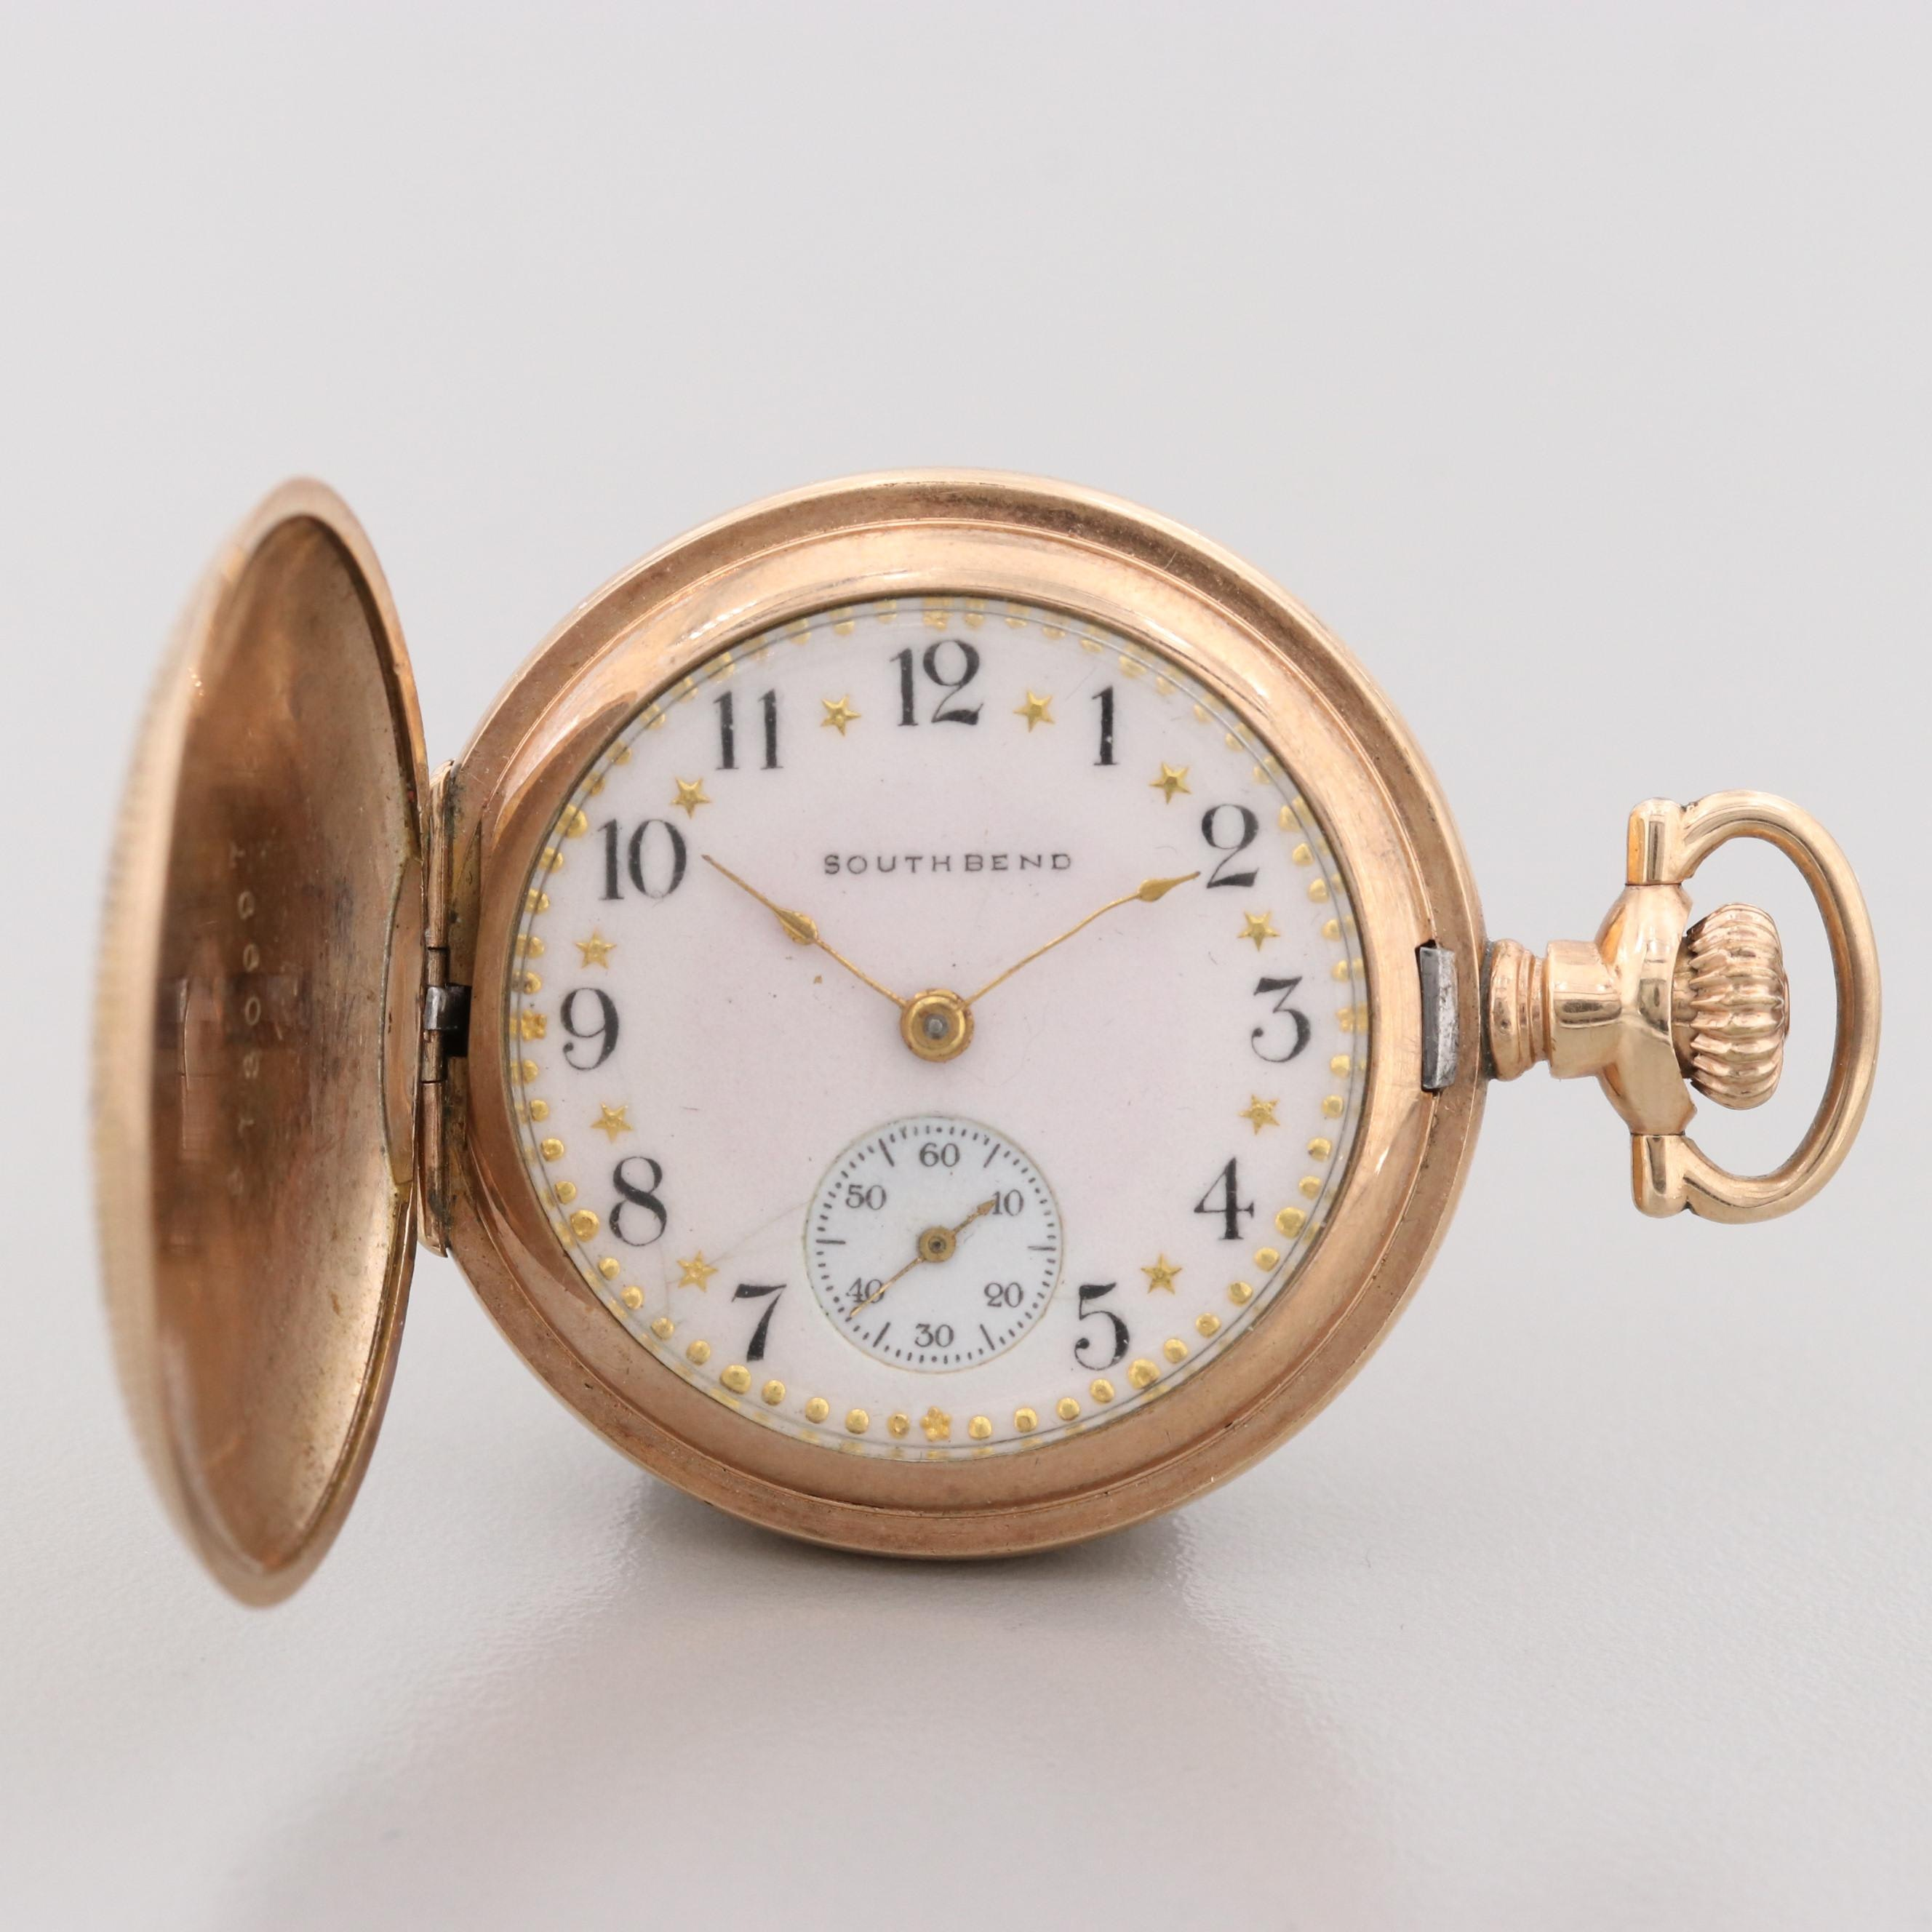 South Bend Gold Filled Pocket Watch, 1912